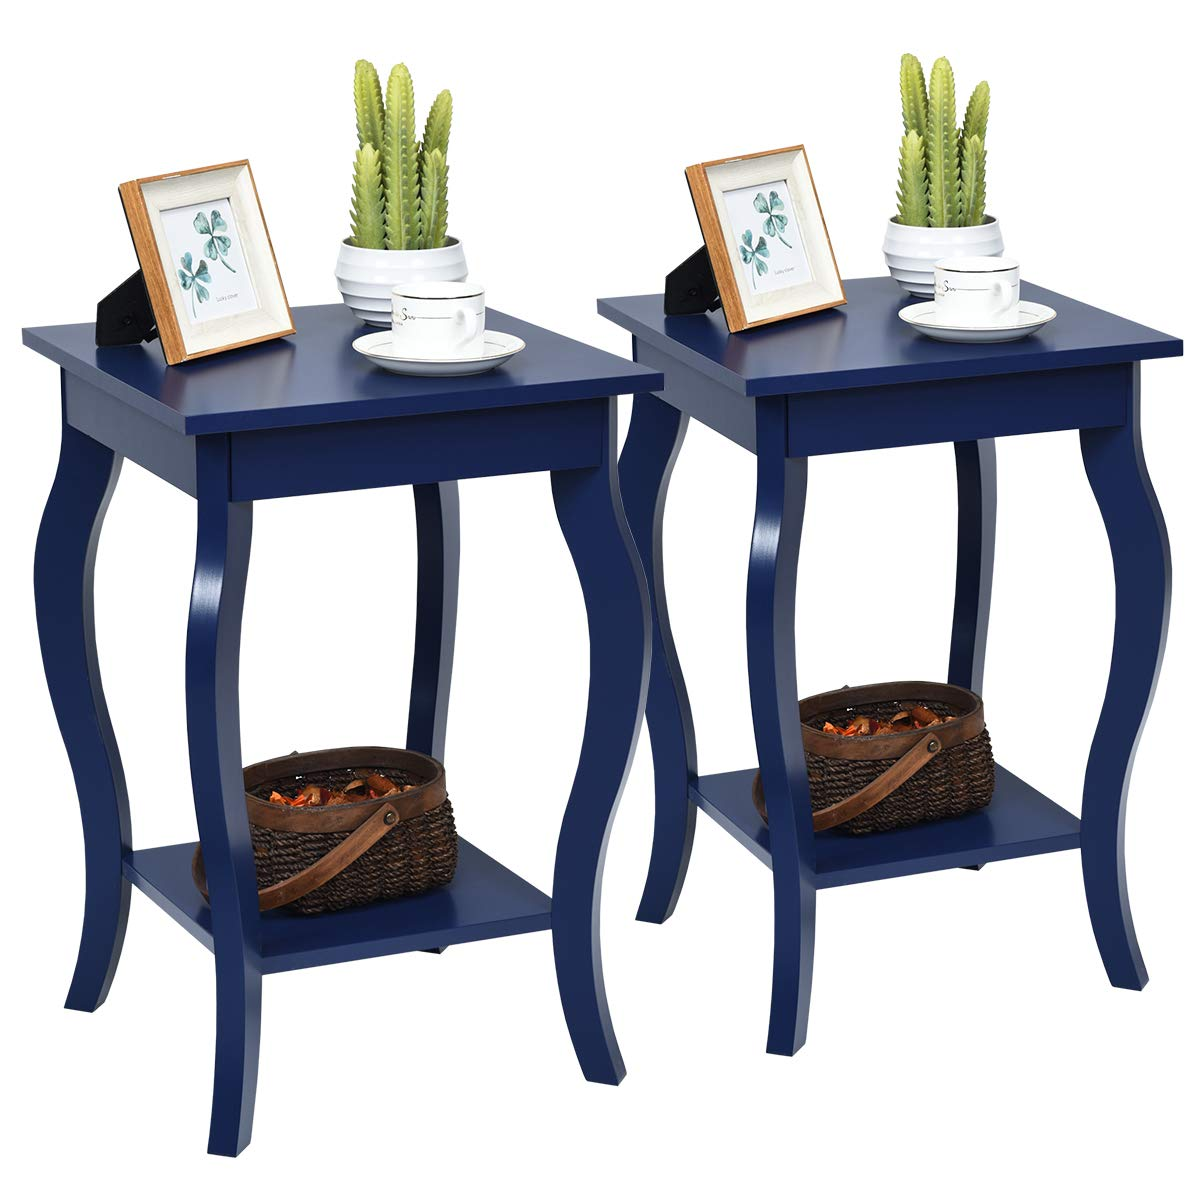 """Amazon.com: Giantex End Table 16"""" W/Storage & Shelf Curved Legs Home Furniture For Living Room Accent Sofa Side Table Nightstand (2, Blue): Kitchen & Dining"""